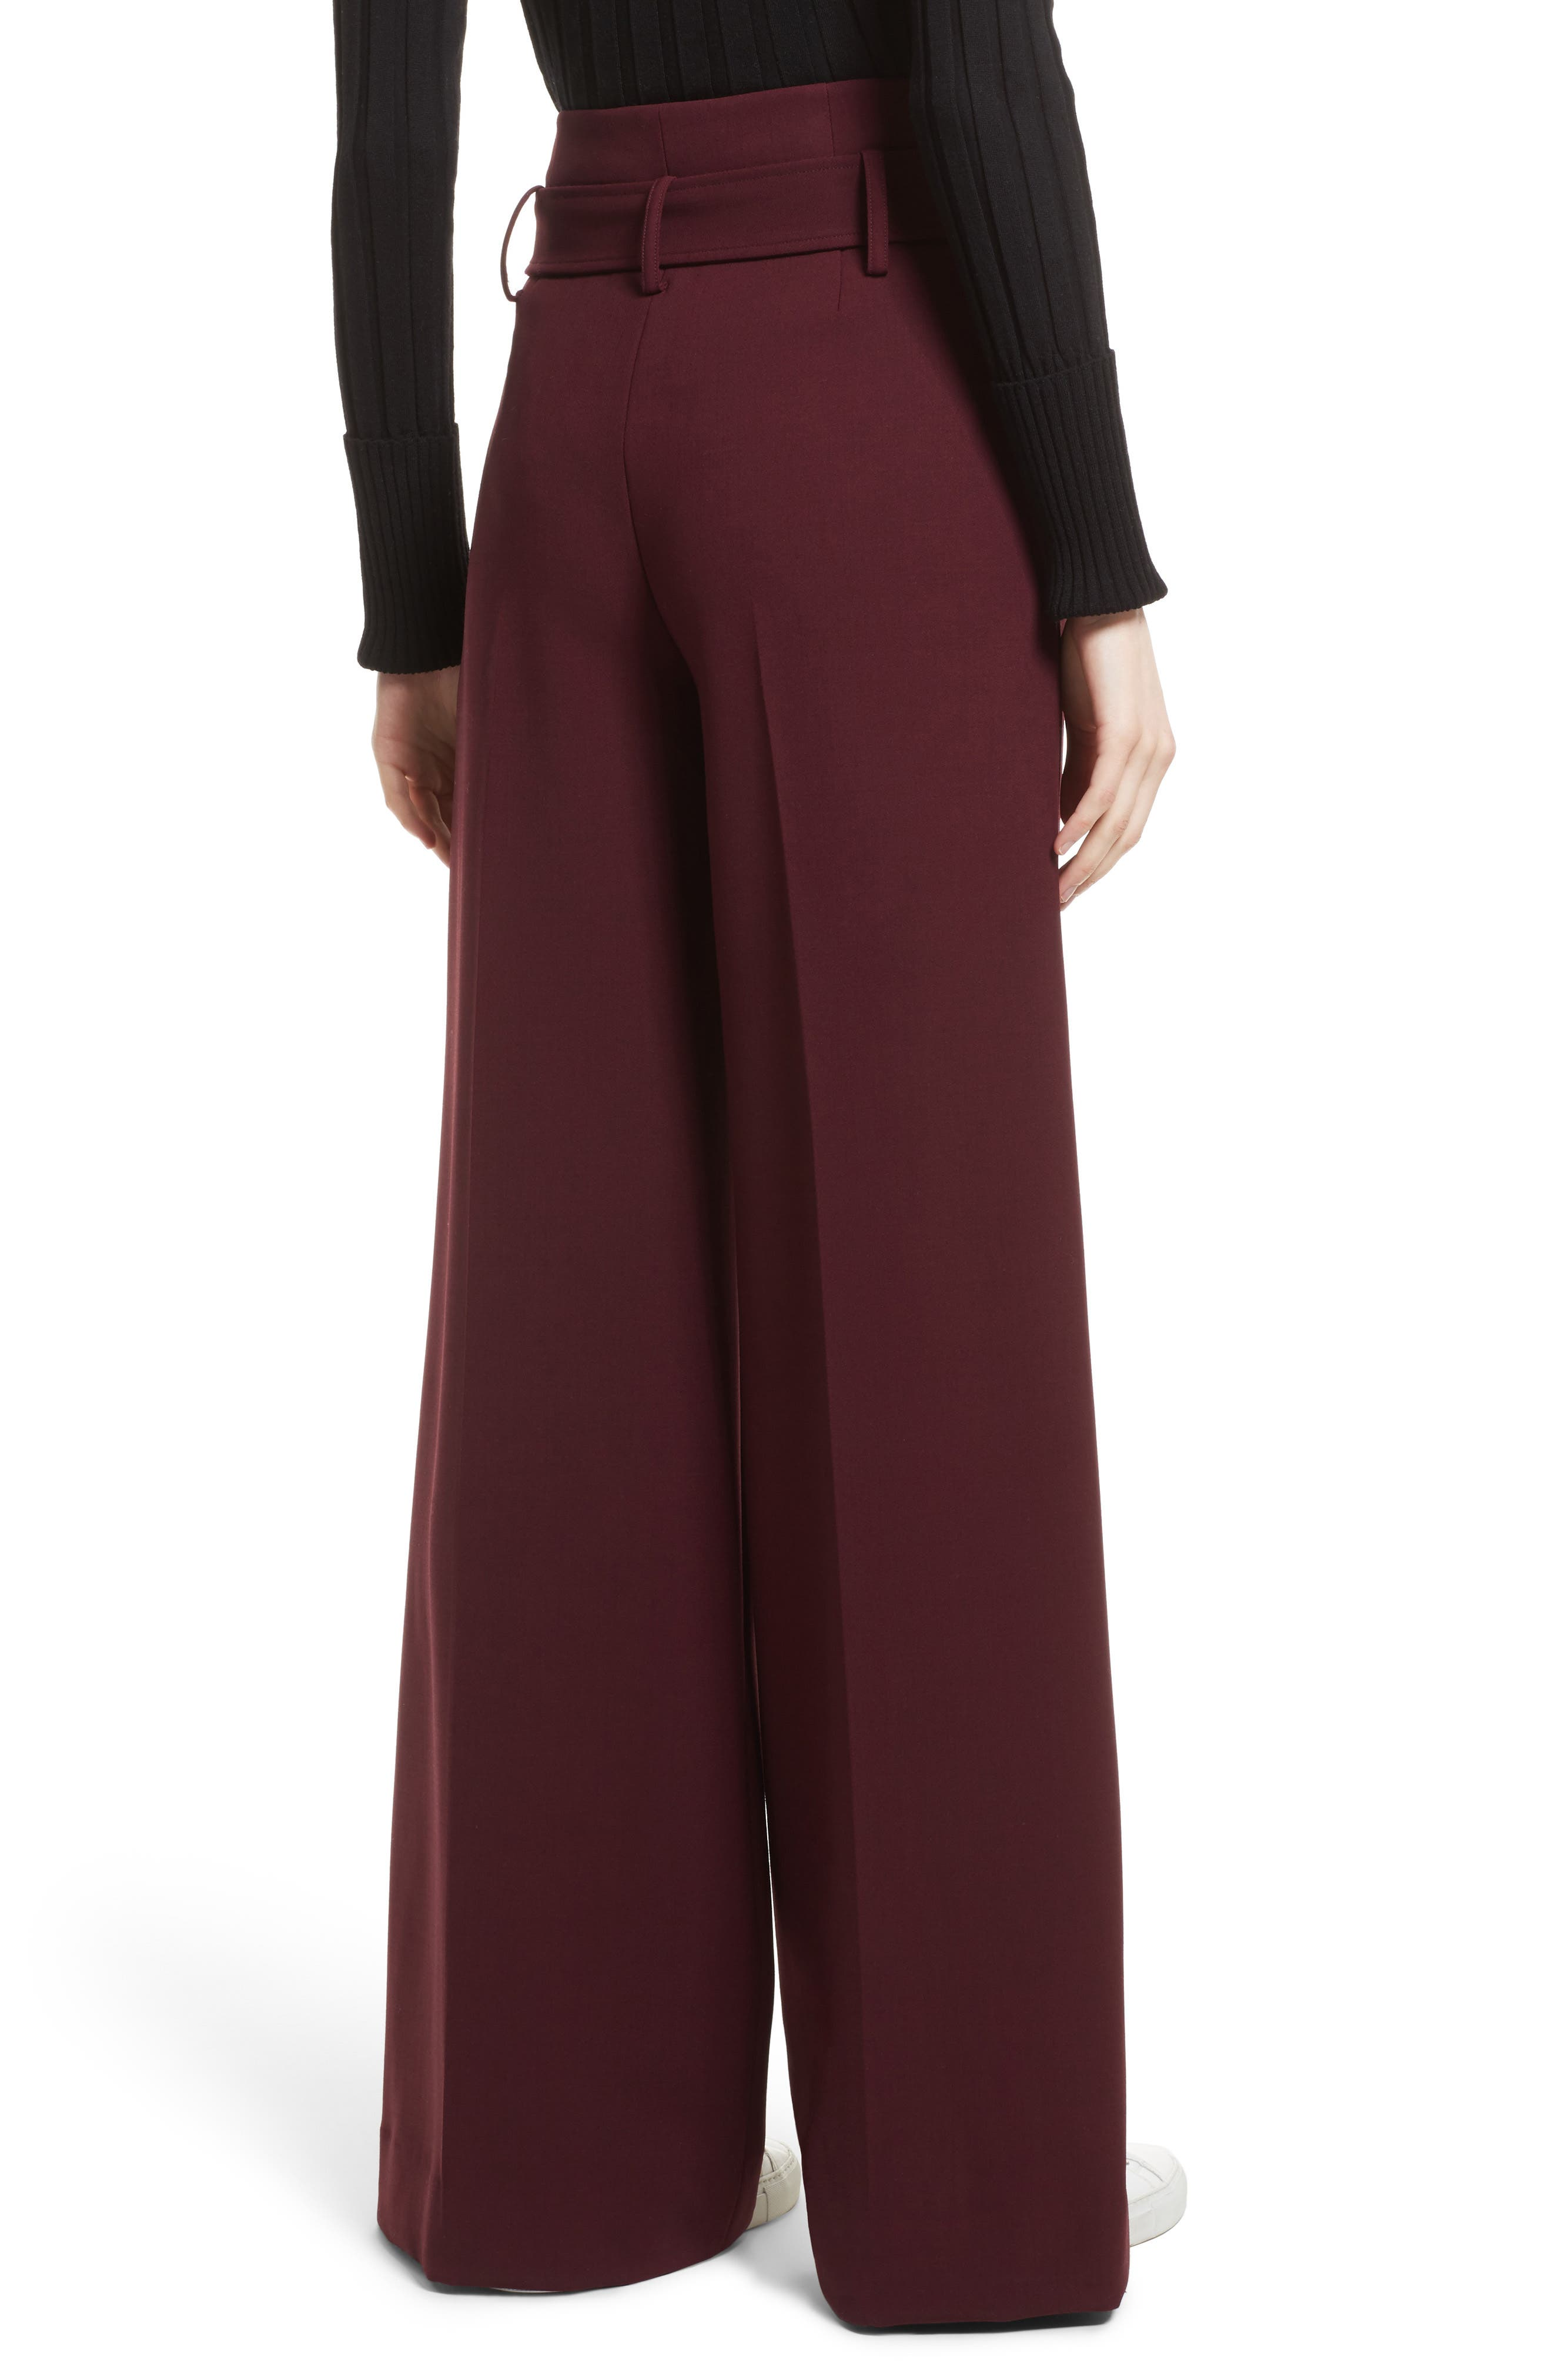 Camogie High Waist Belted Pants,                             Alternate thumbnail 2, color,                             Dark Currant